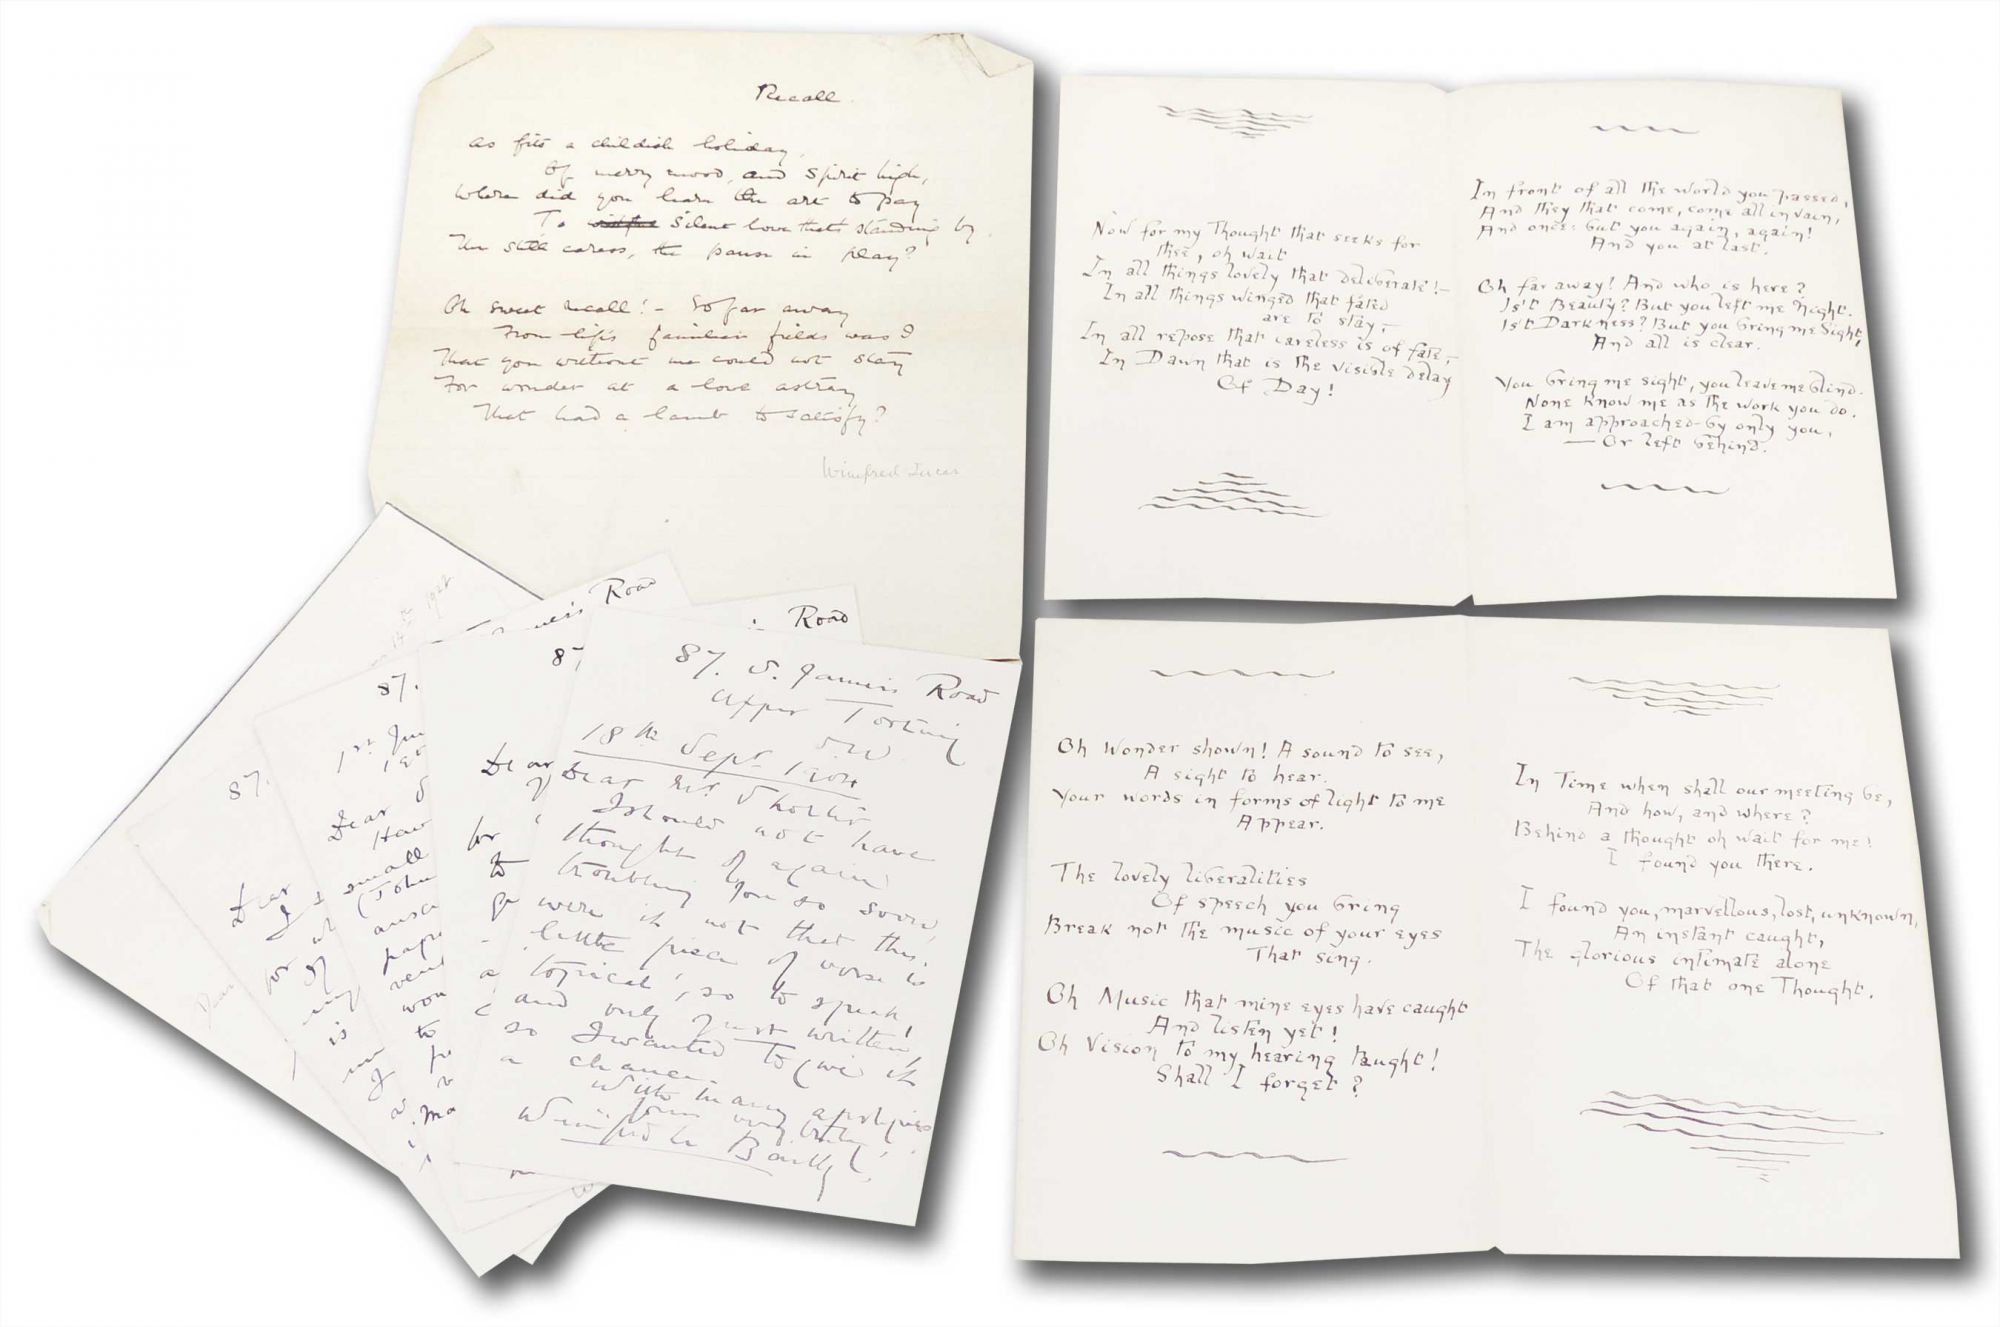 Poems, with small collection of handwritten letters and